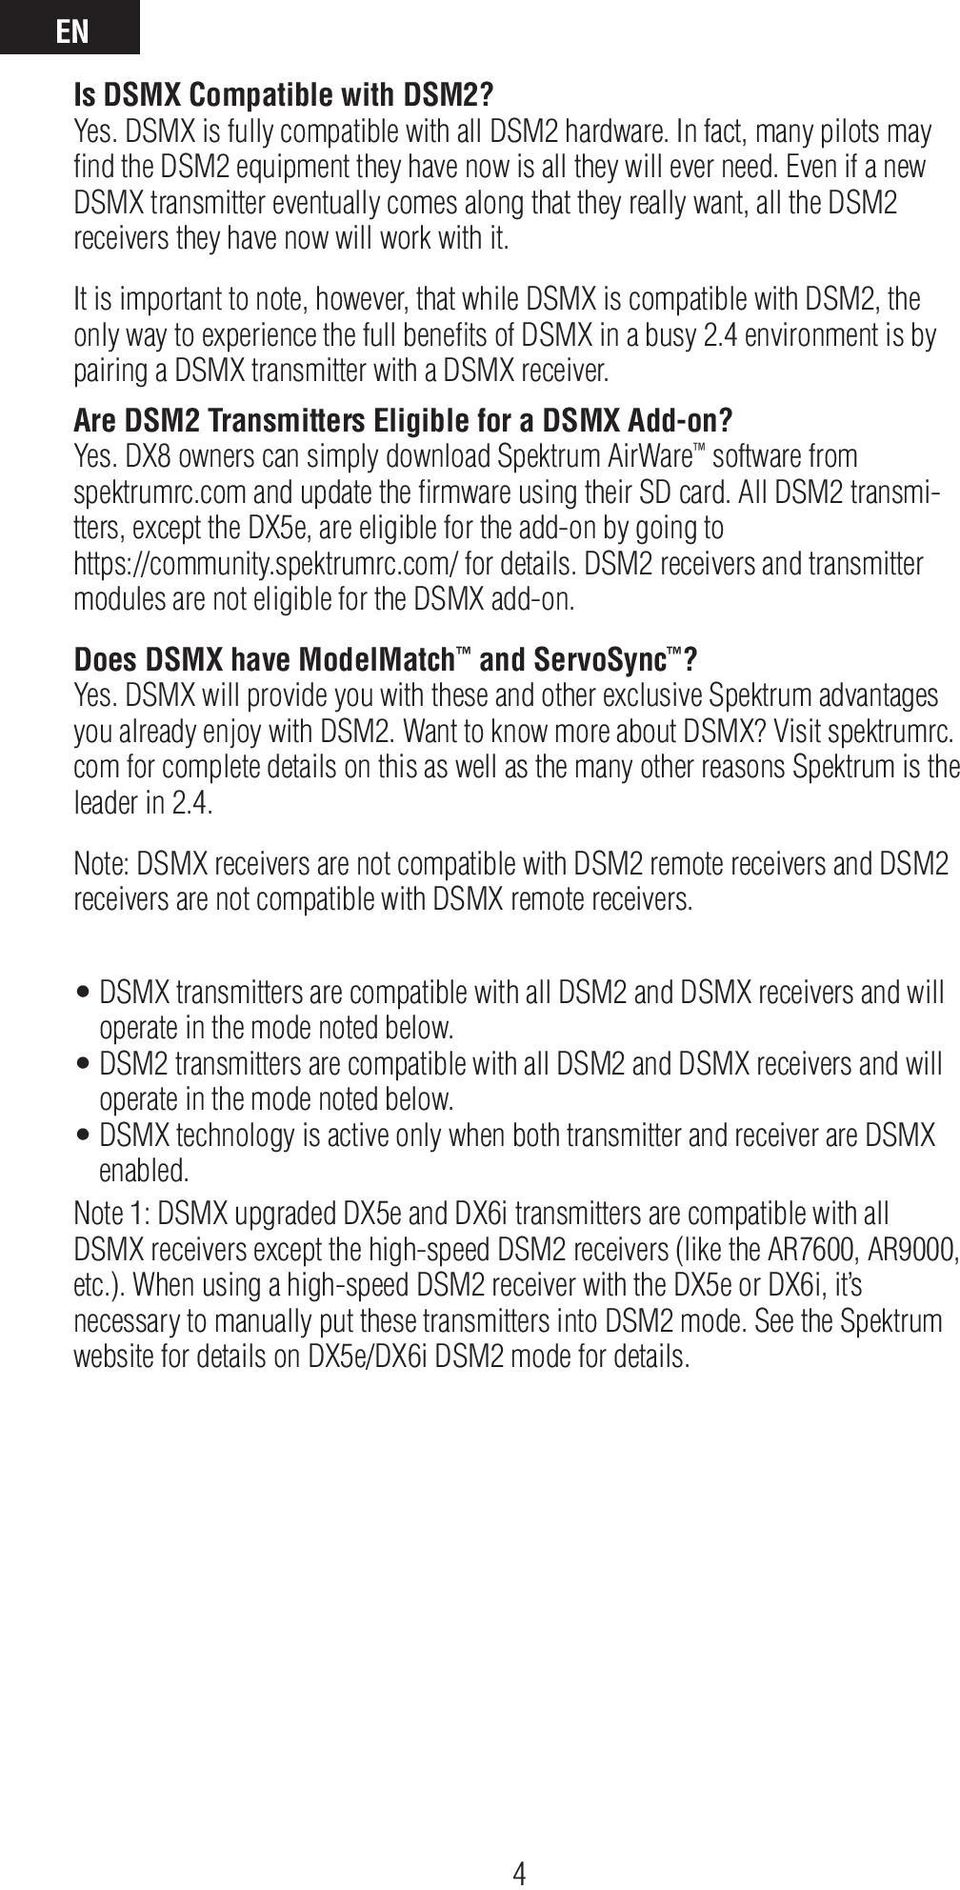 It is important to note, however, that while DSMX is compatible with DSM2, the only way to experience the full benefits of DSMX in a busy 2.